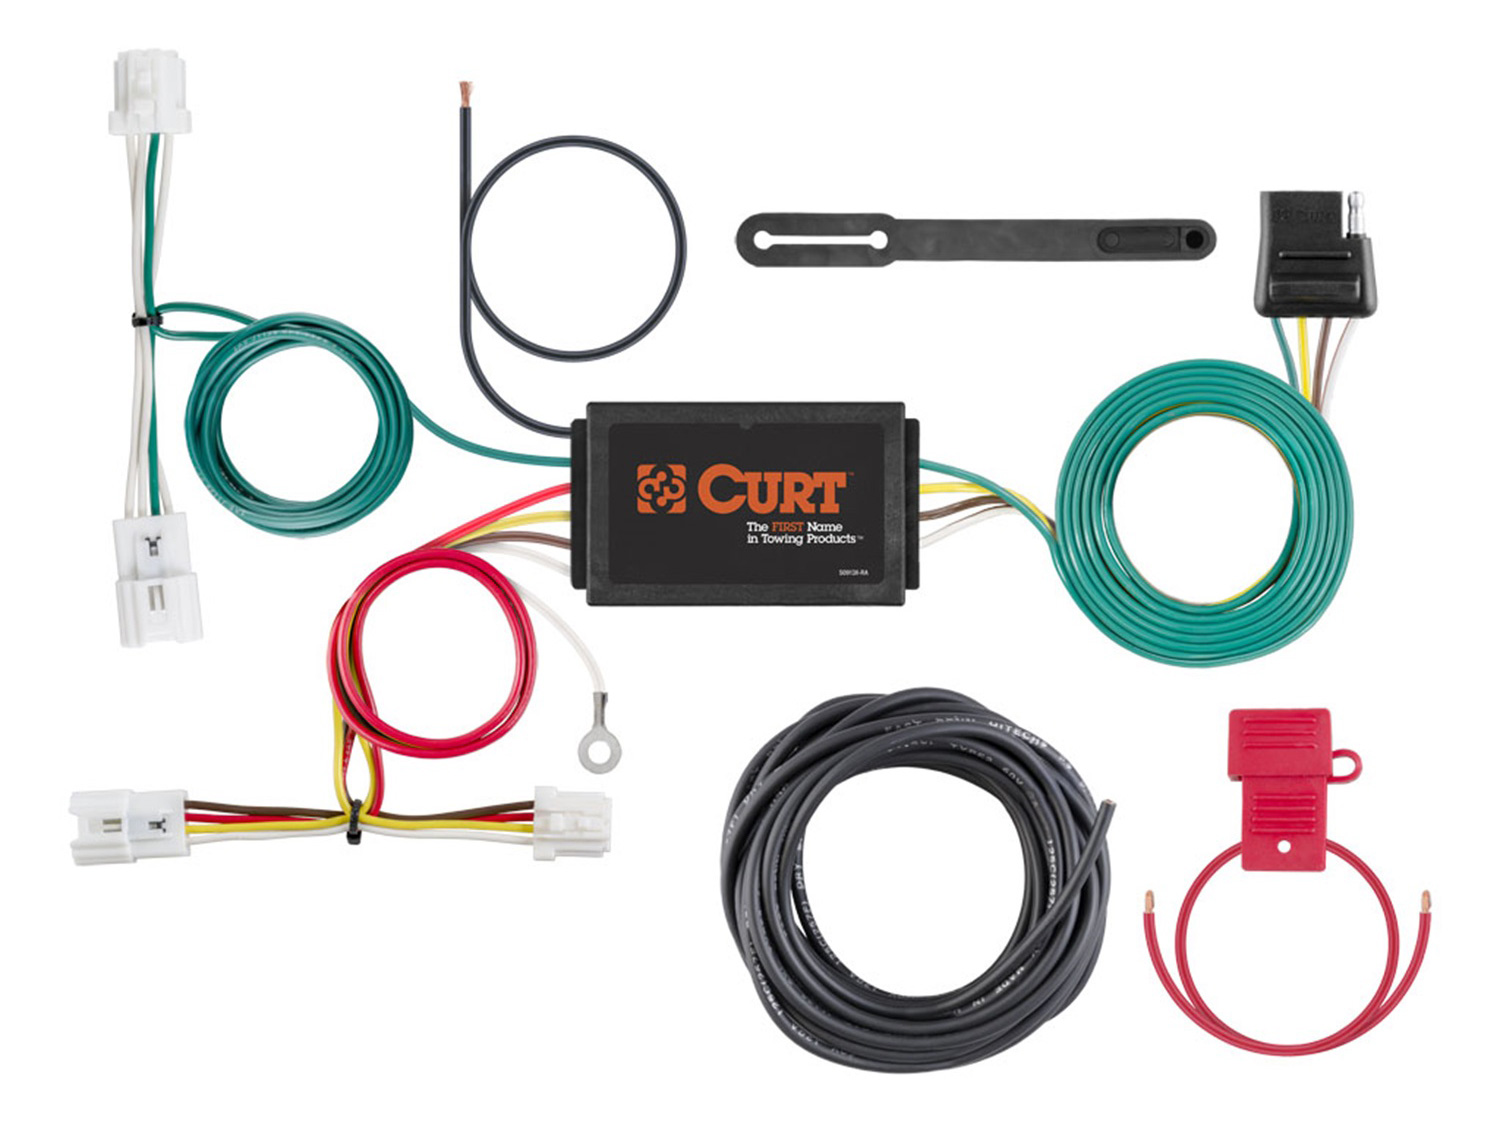 2017 Nissan Altima Trailer Wiring Harness Solutions Hitch 2018 Curt Mfg Kit 56339